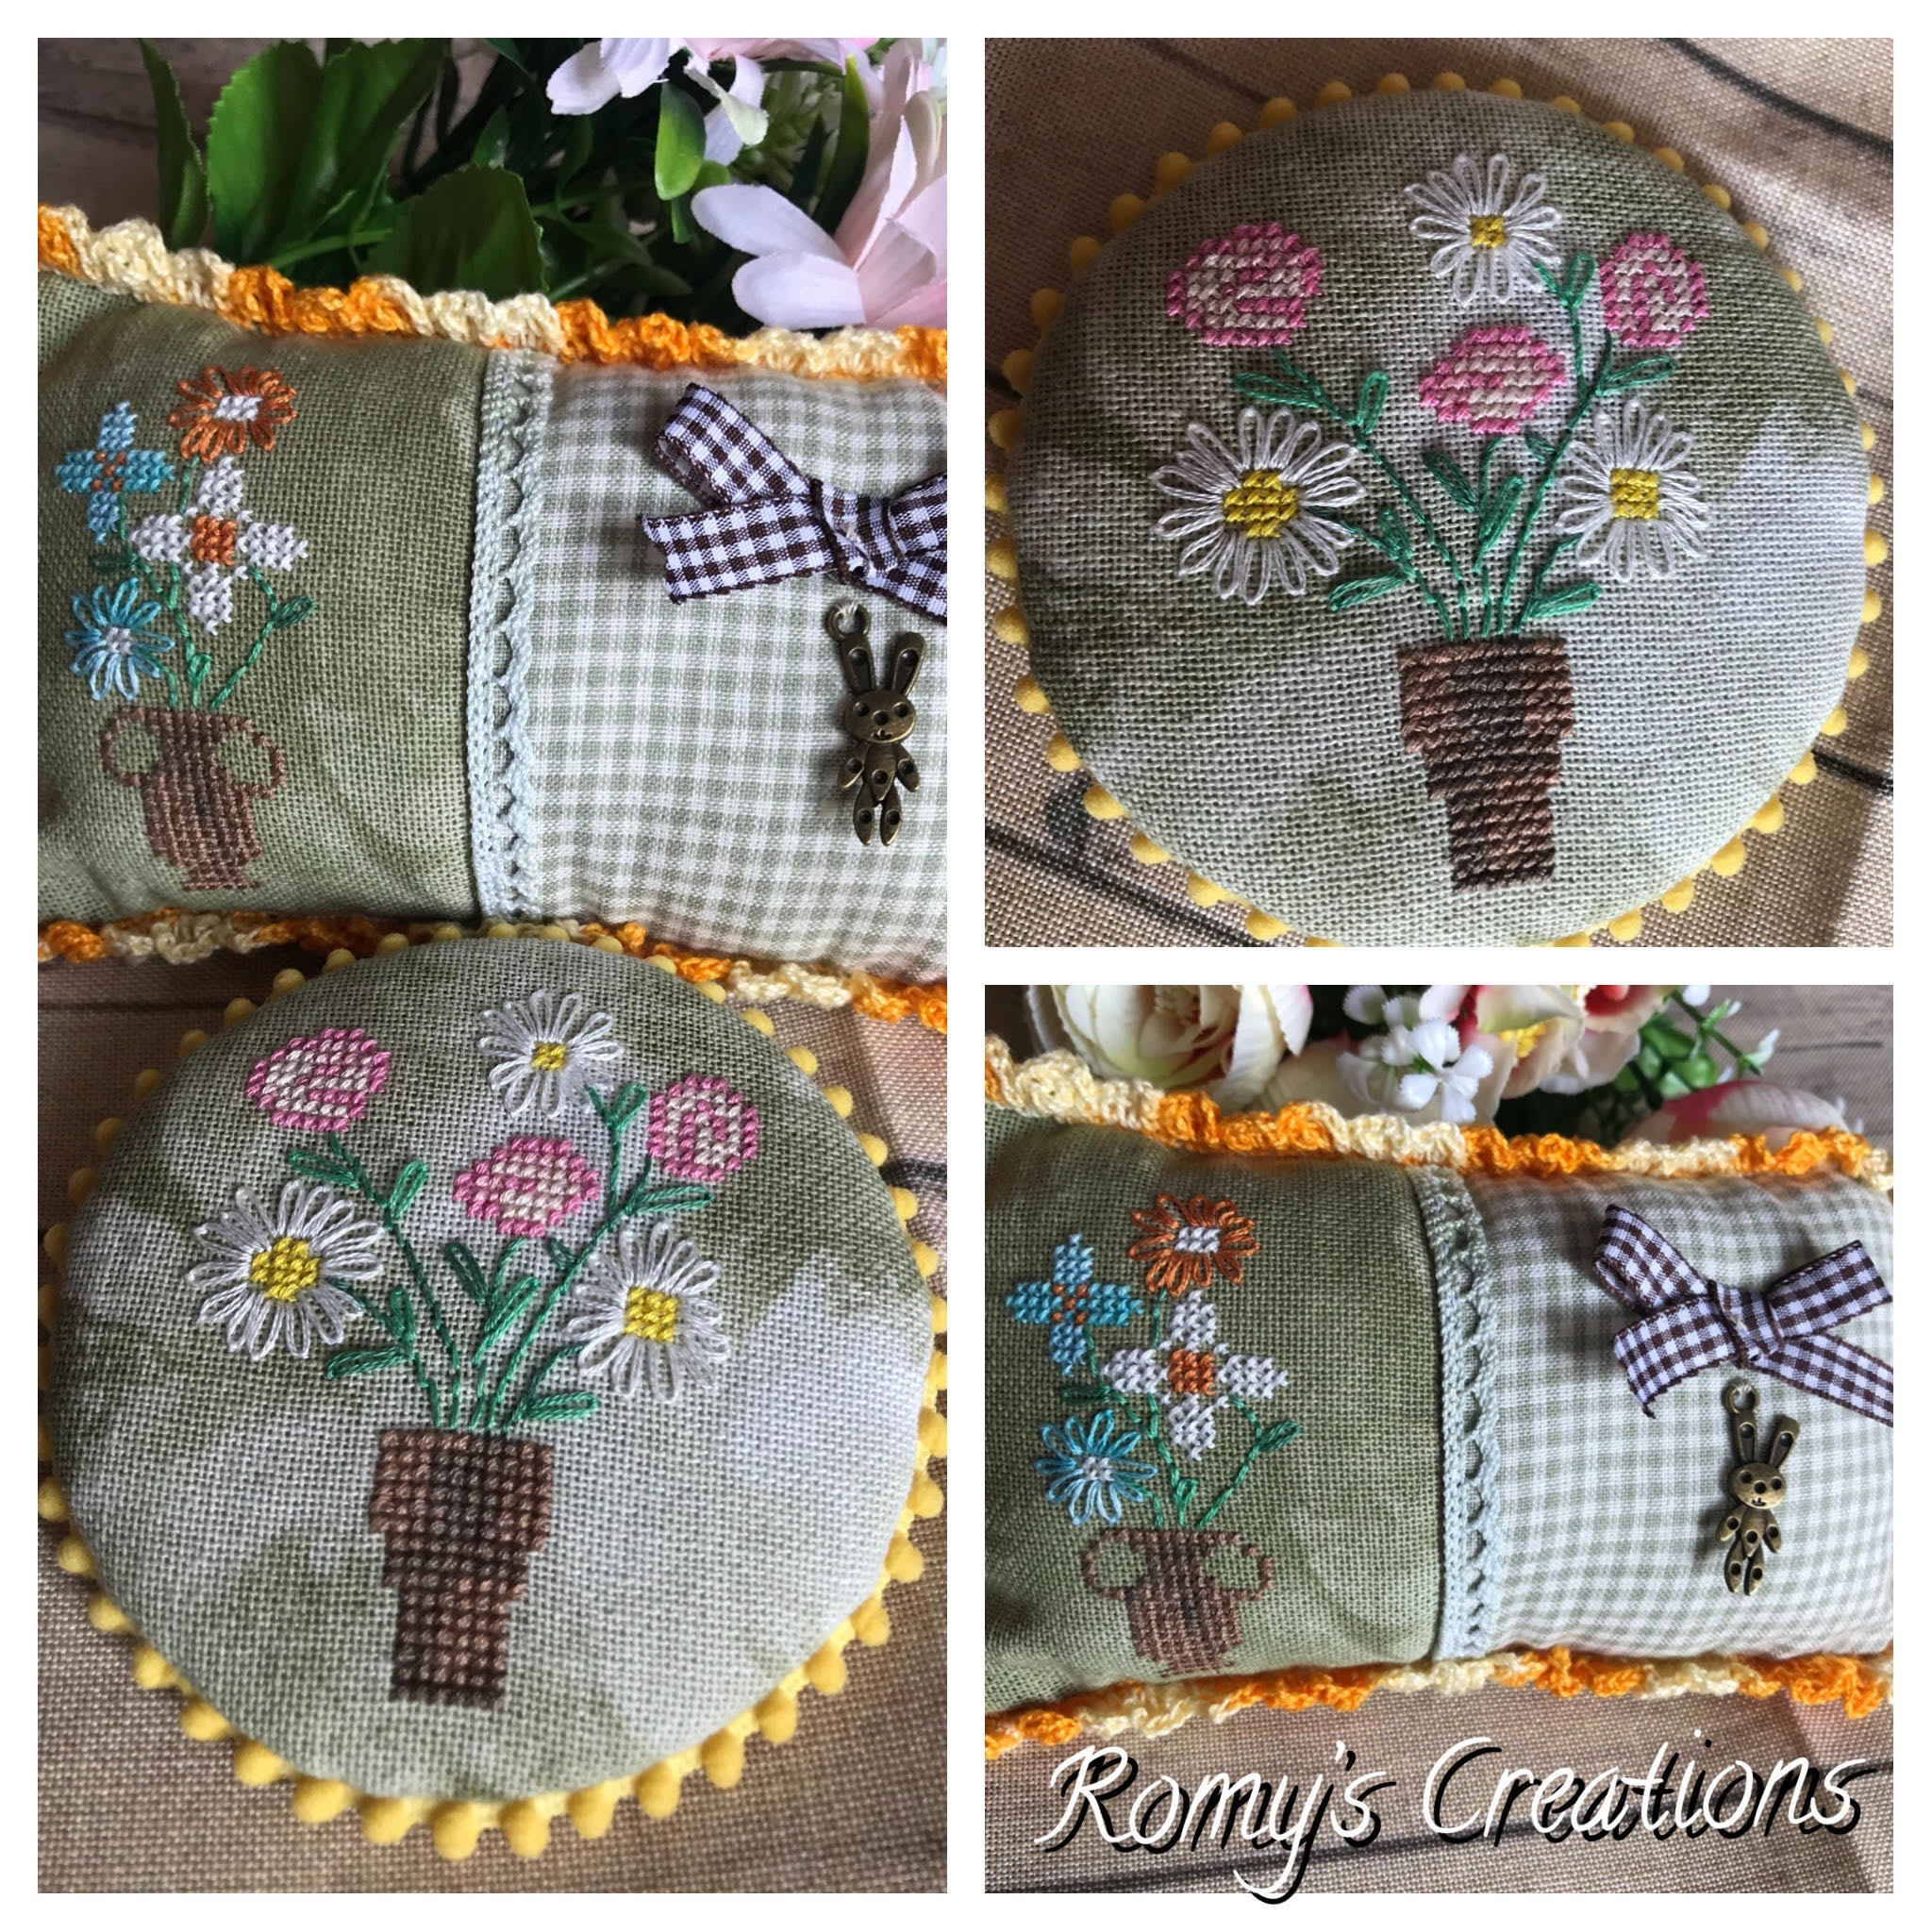 Spring in Green - Romy's Creations